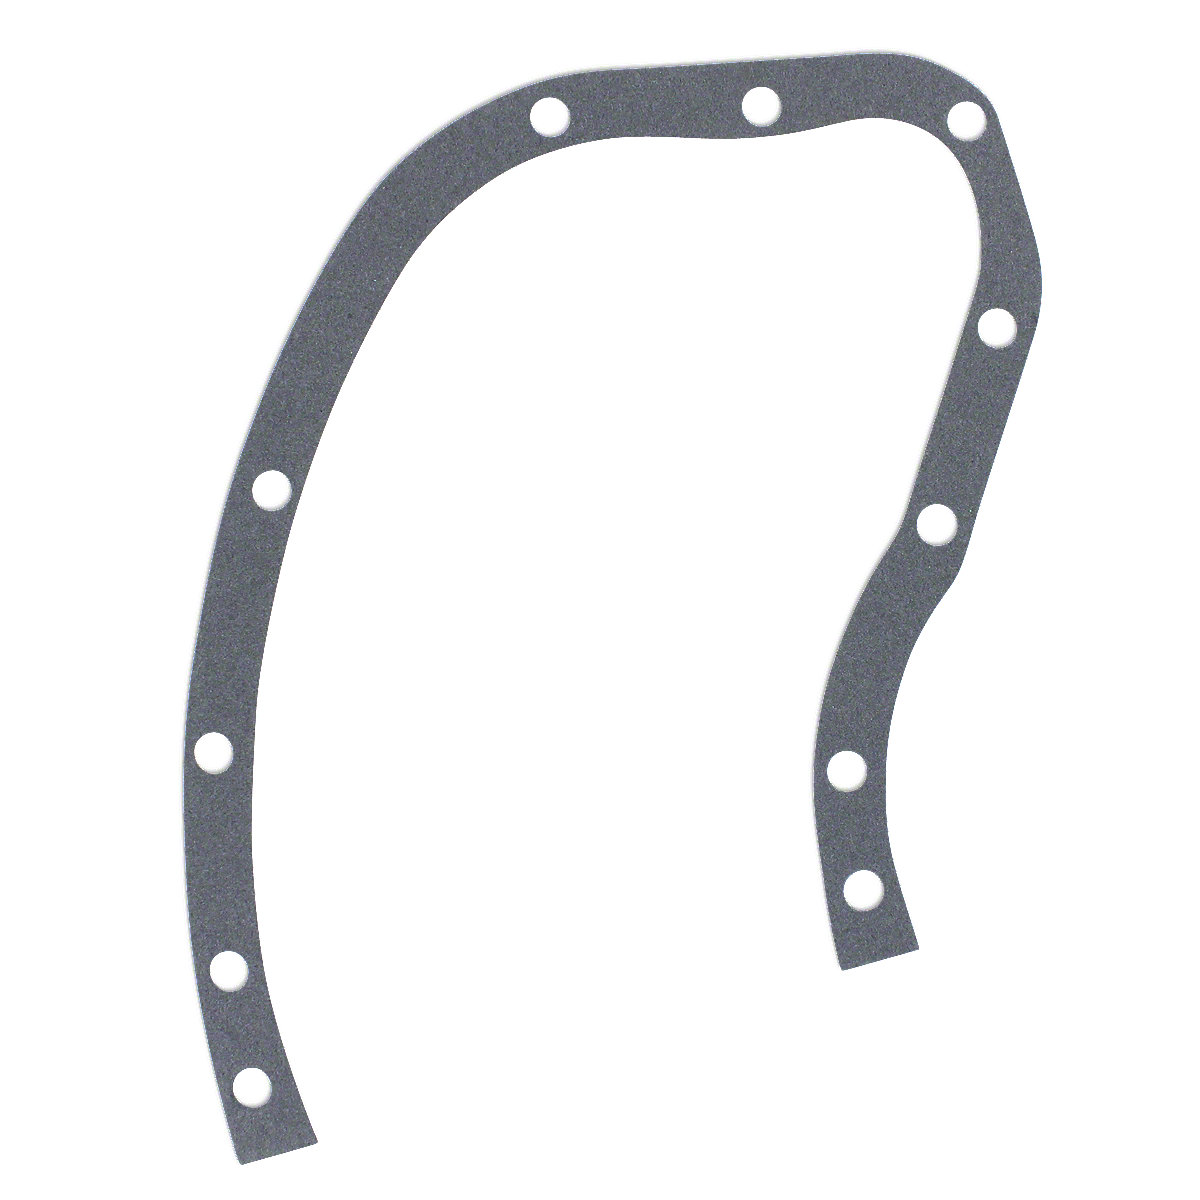 Timing Gear Cover Gasket For Massey Ferguson: 20C, 30B, 202, 204, 2135, 35, 50, 135, 150, 230, 235, 245, 40, 50, Massey Harris: 50.